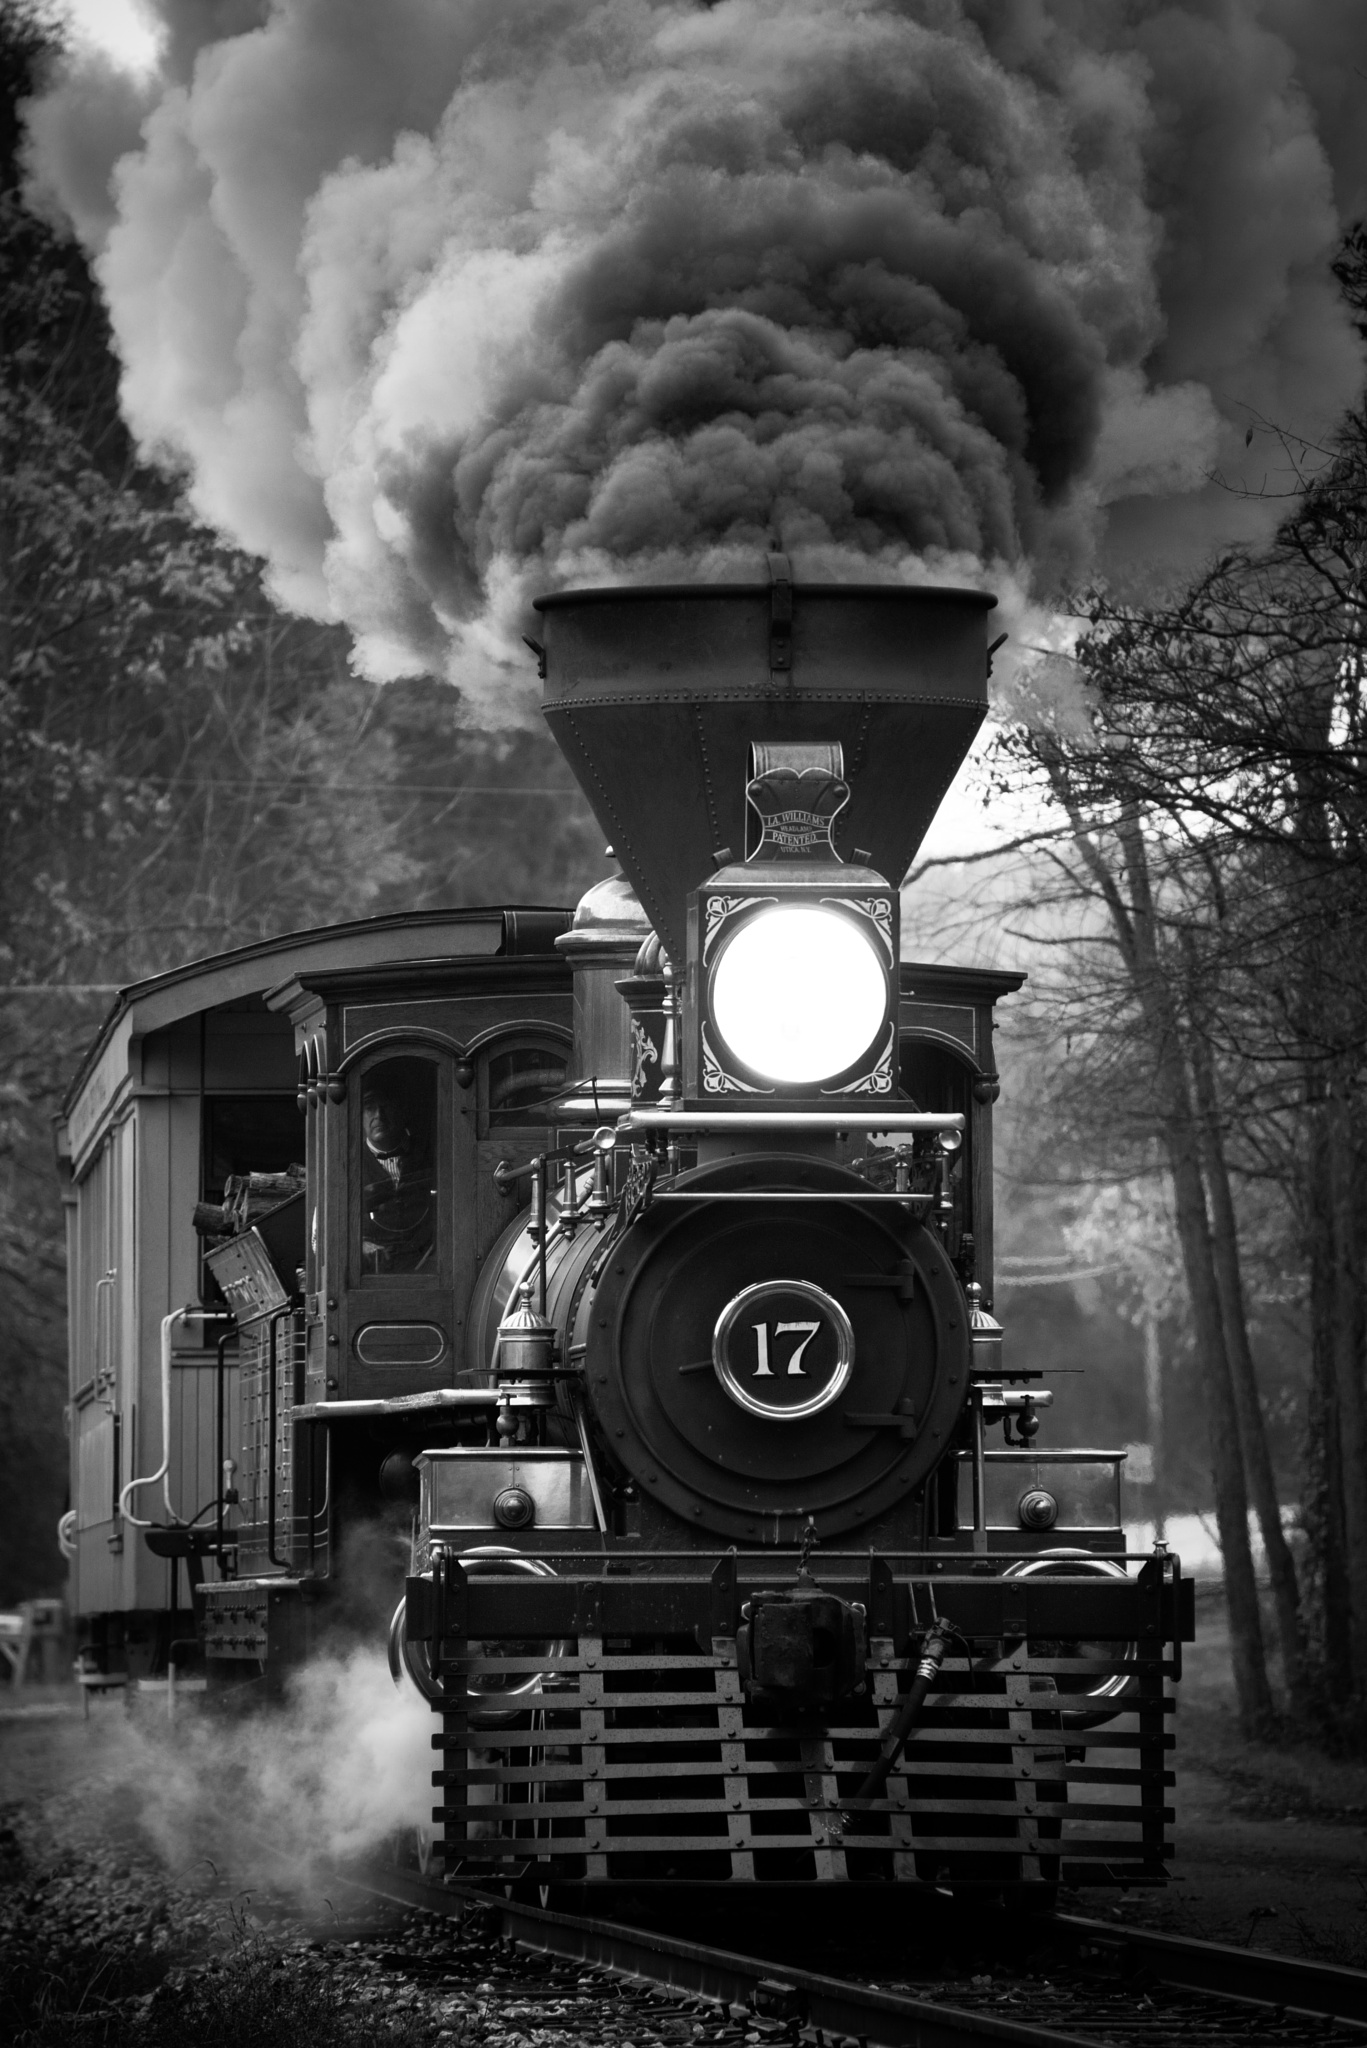 Engine 17 by Mike Thorpe